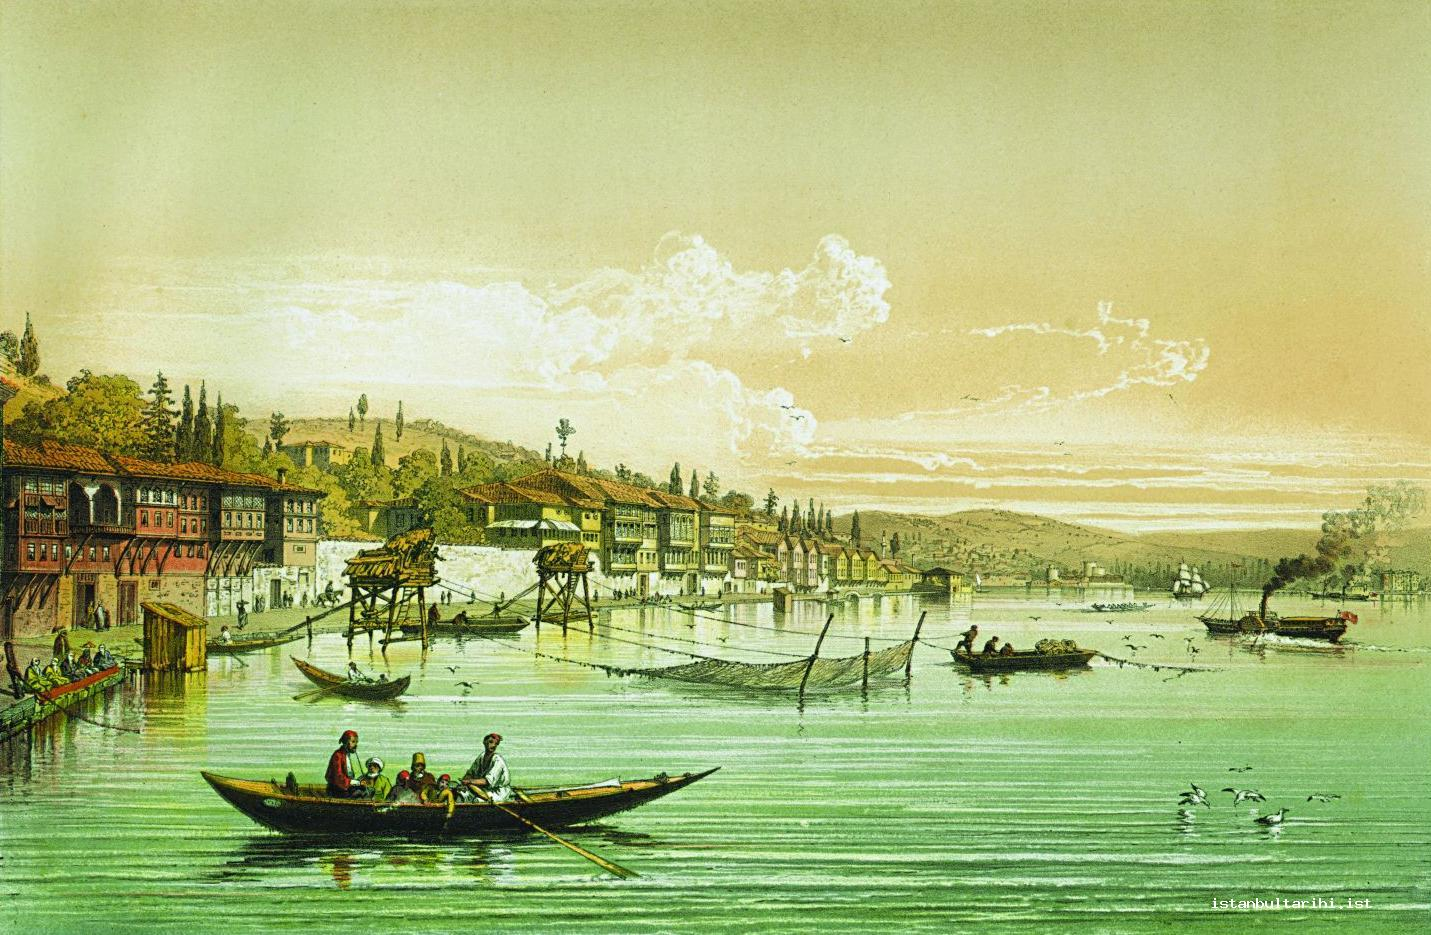 8- The seaside mansions along Bosporus (Anatolian Castle is on the other side) (Brindesi)